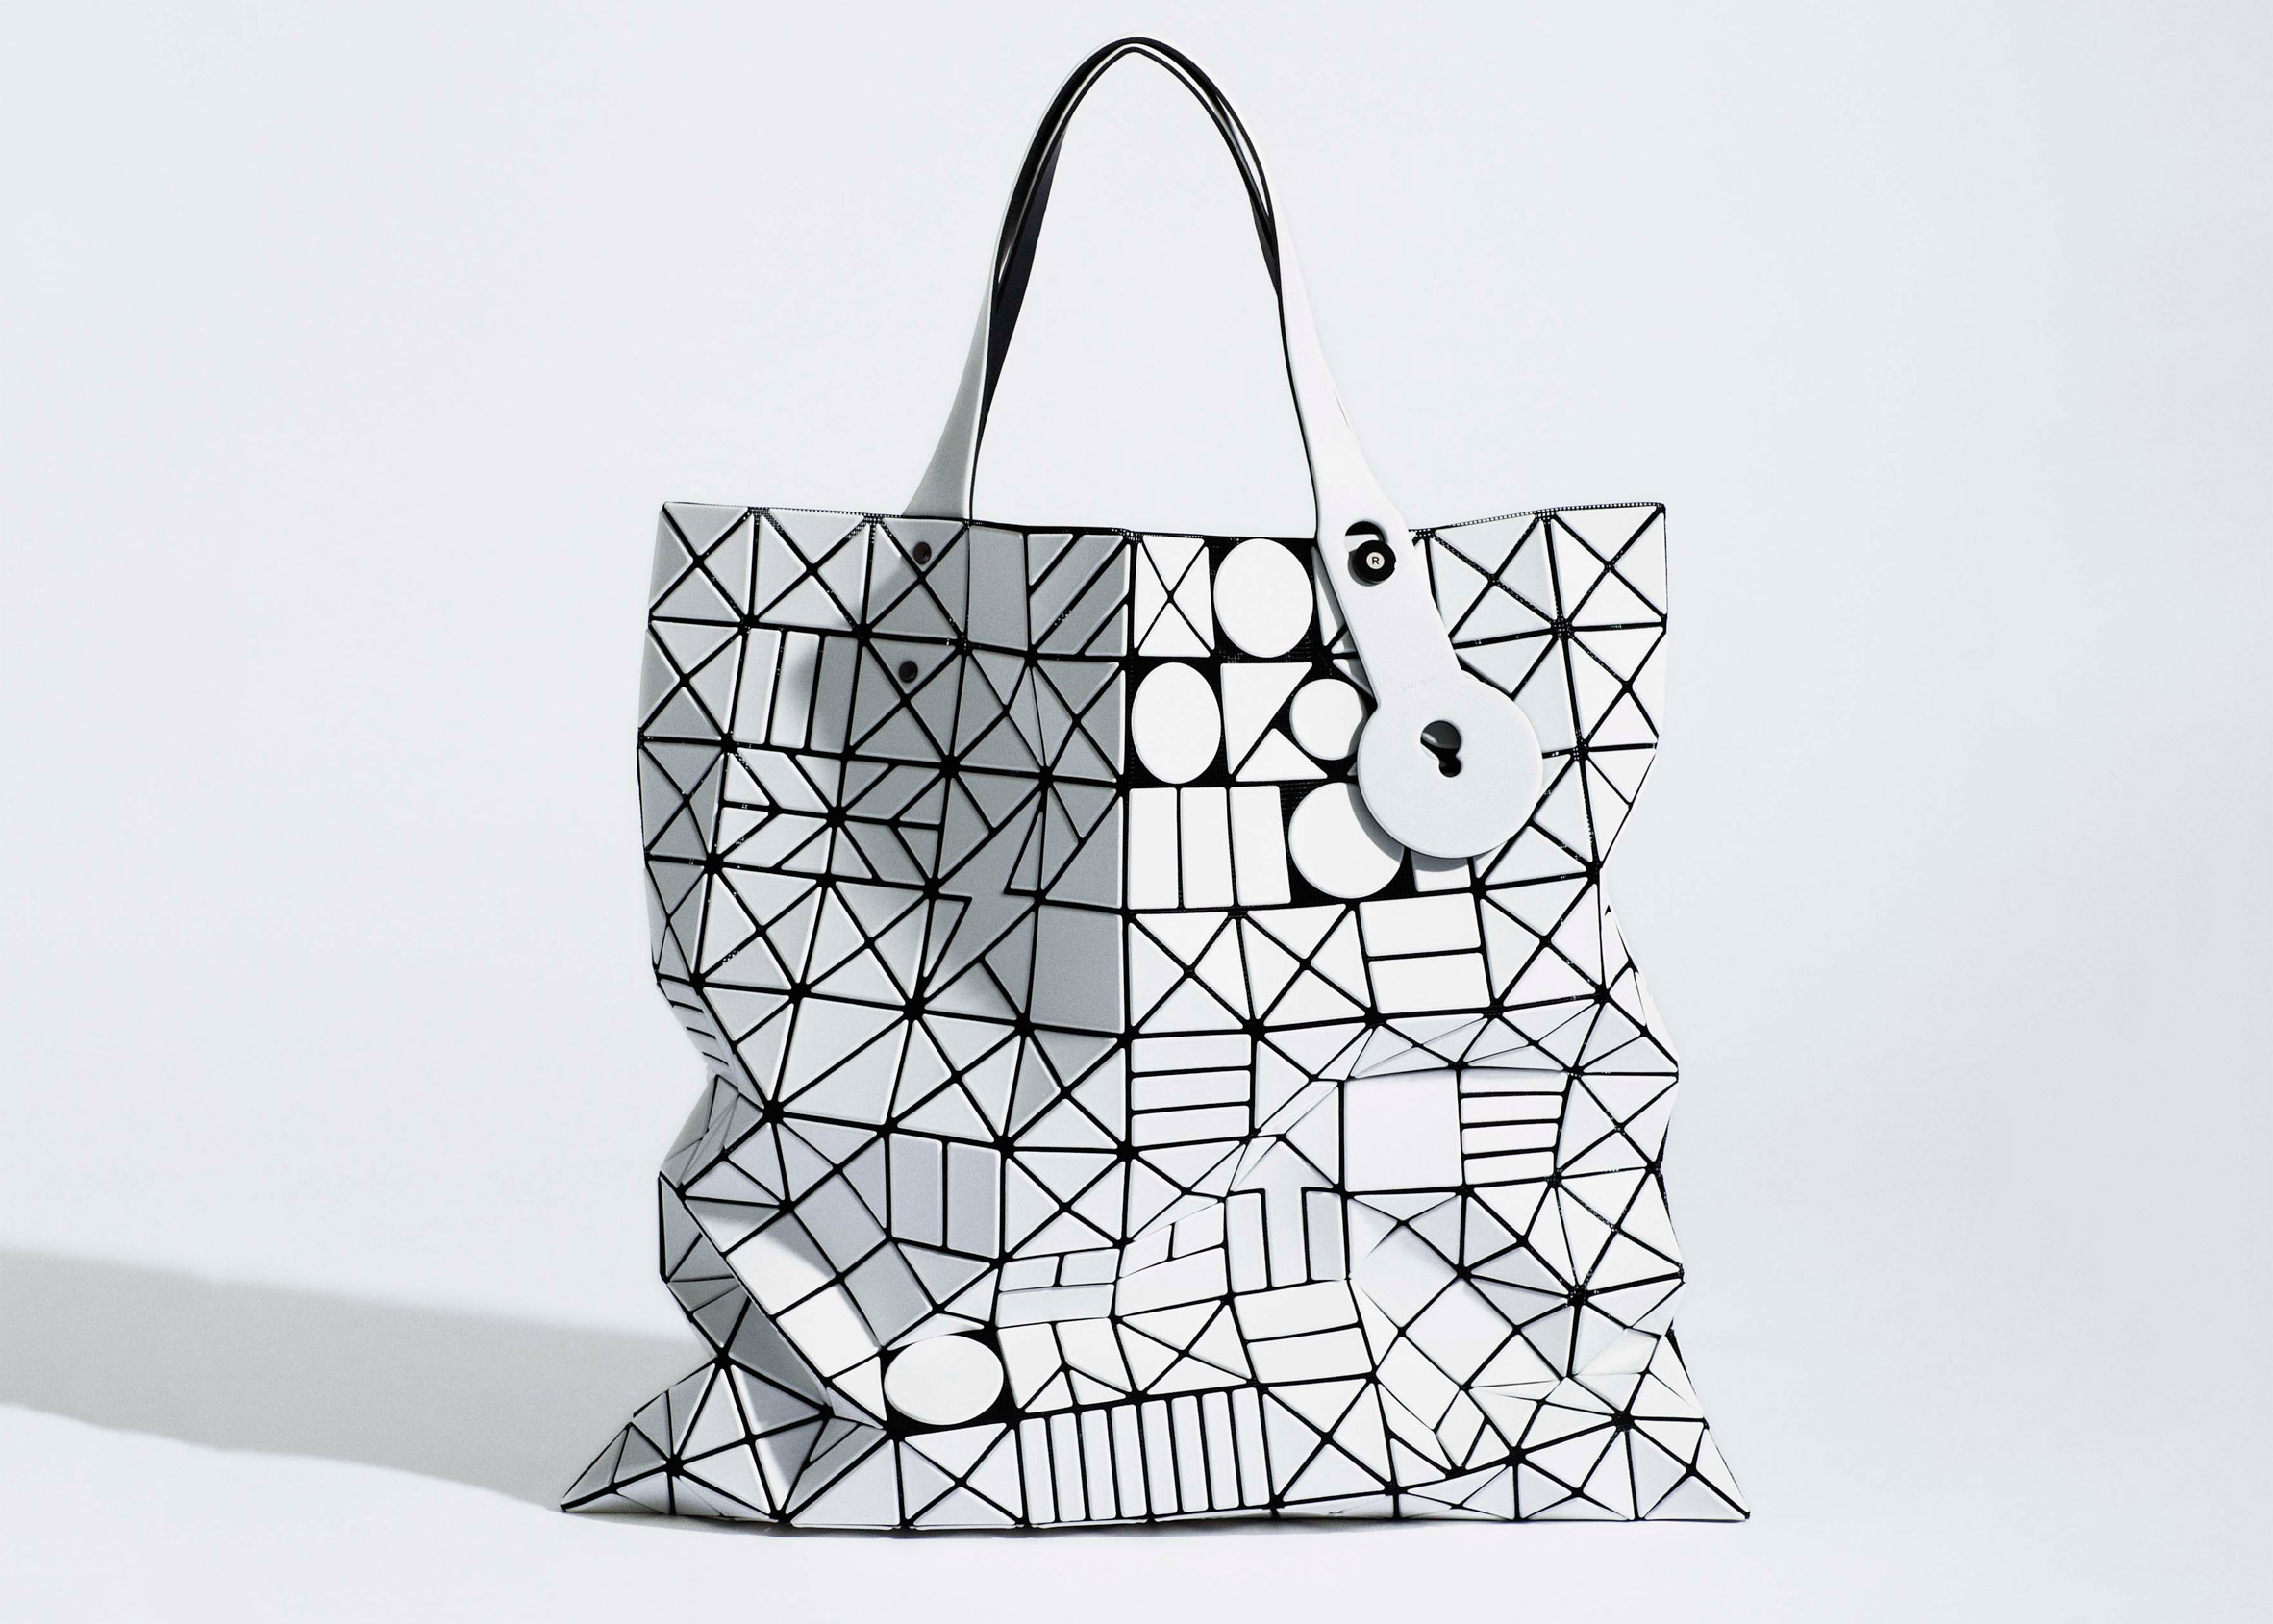 Issey Miyake updates iconic Bao Bao bag with new shapes 02b357aed5335